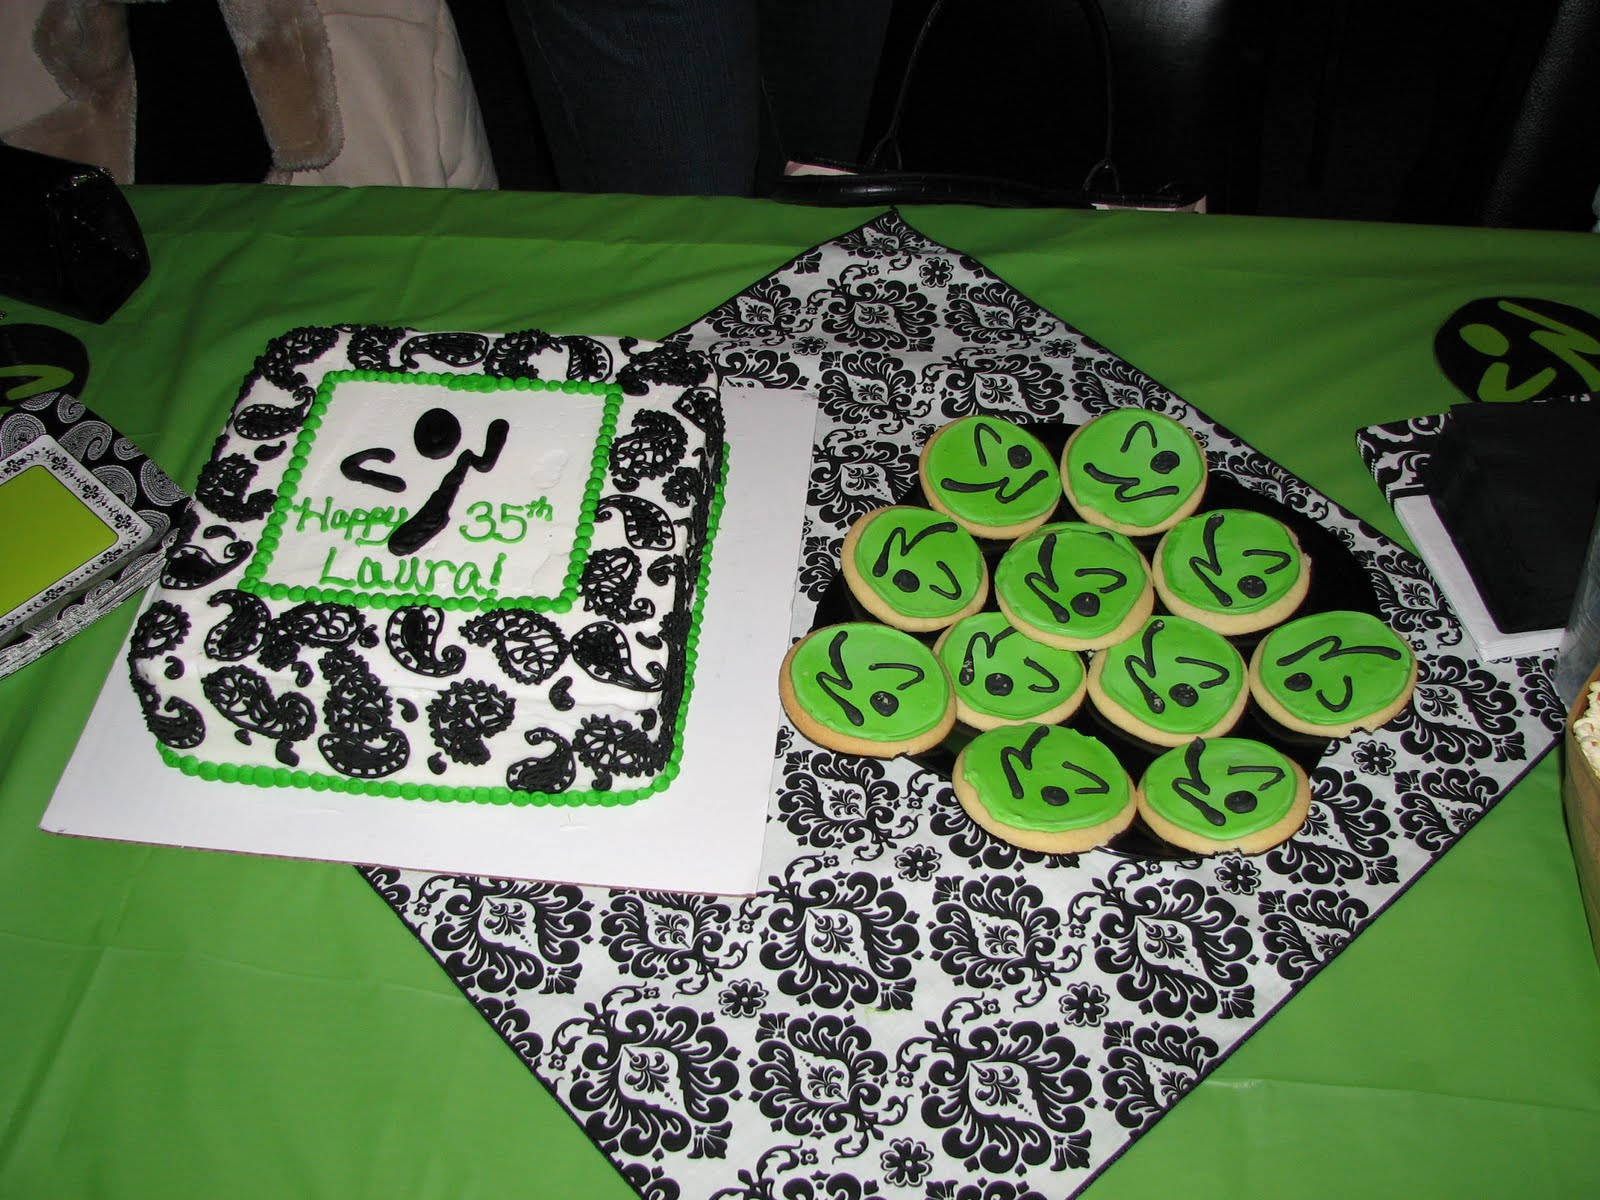 Zumba Birthday Cake http://littleworthwhilemoments.blogspot.com/2012/01/cake-highlights-in-2011.html